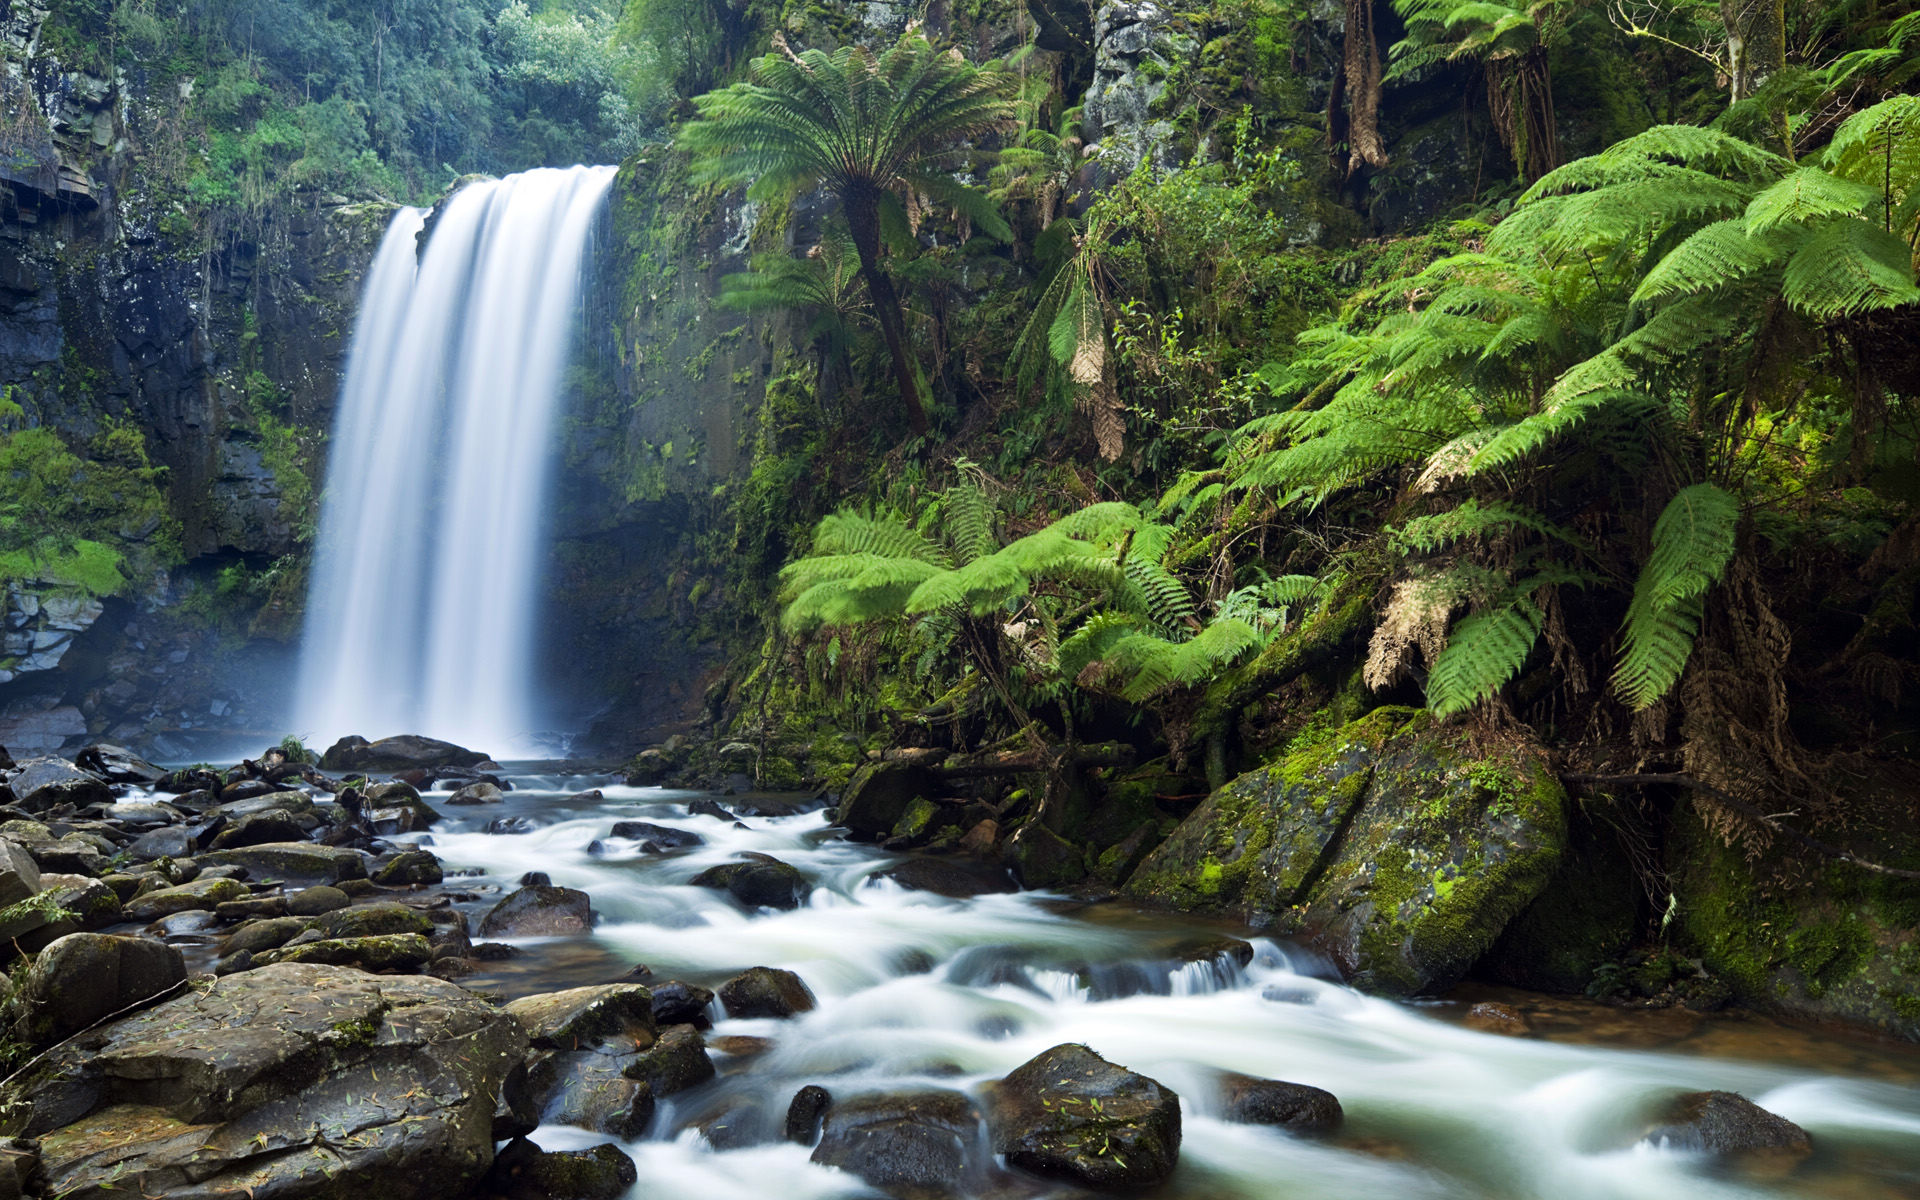 3d waterfall live wallpaper download which is under the waterfall 1920x1200